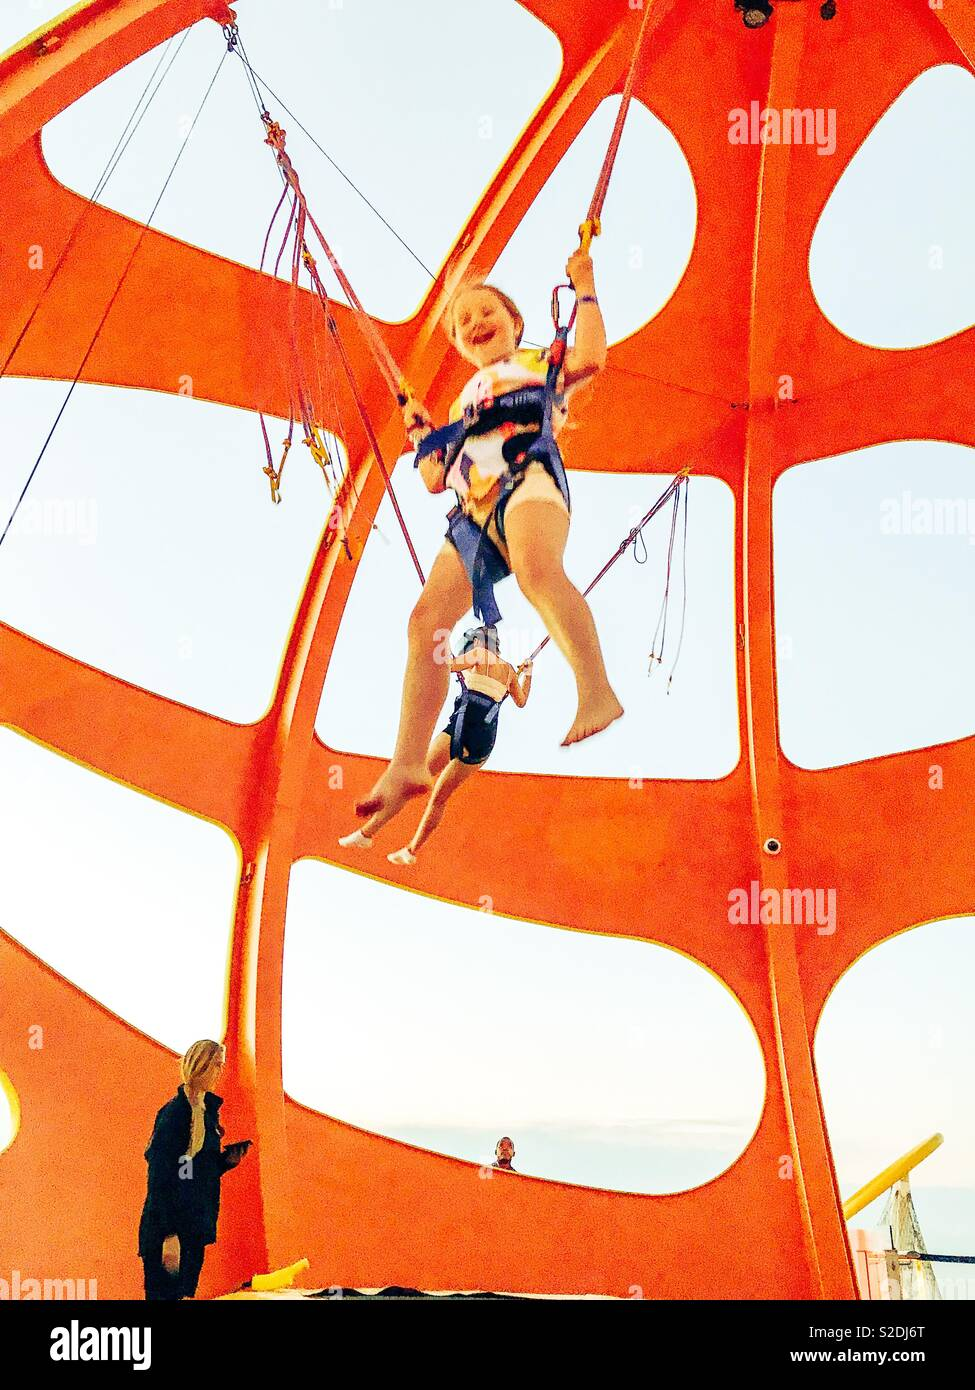 Young girl wearing harness while jumping on trampoline on the Independence of the Seas cruise ship - Stock Image